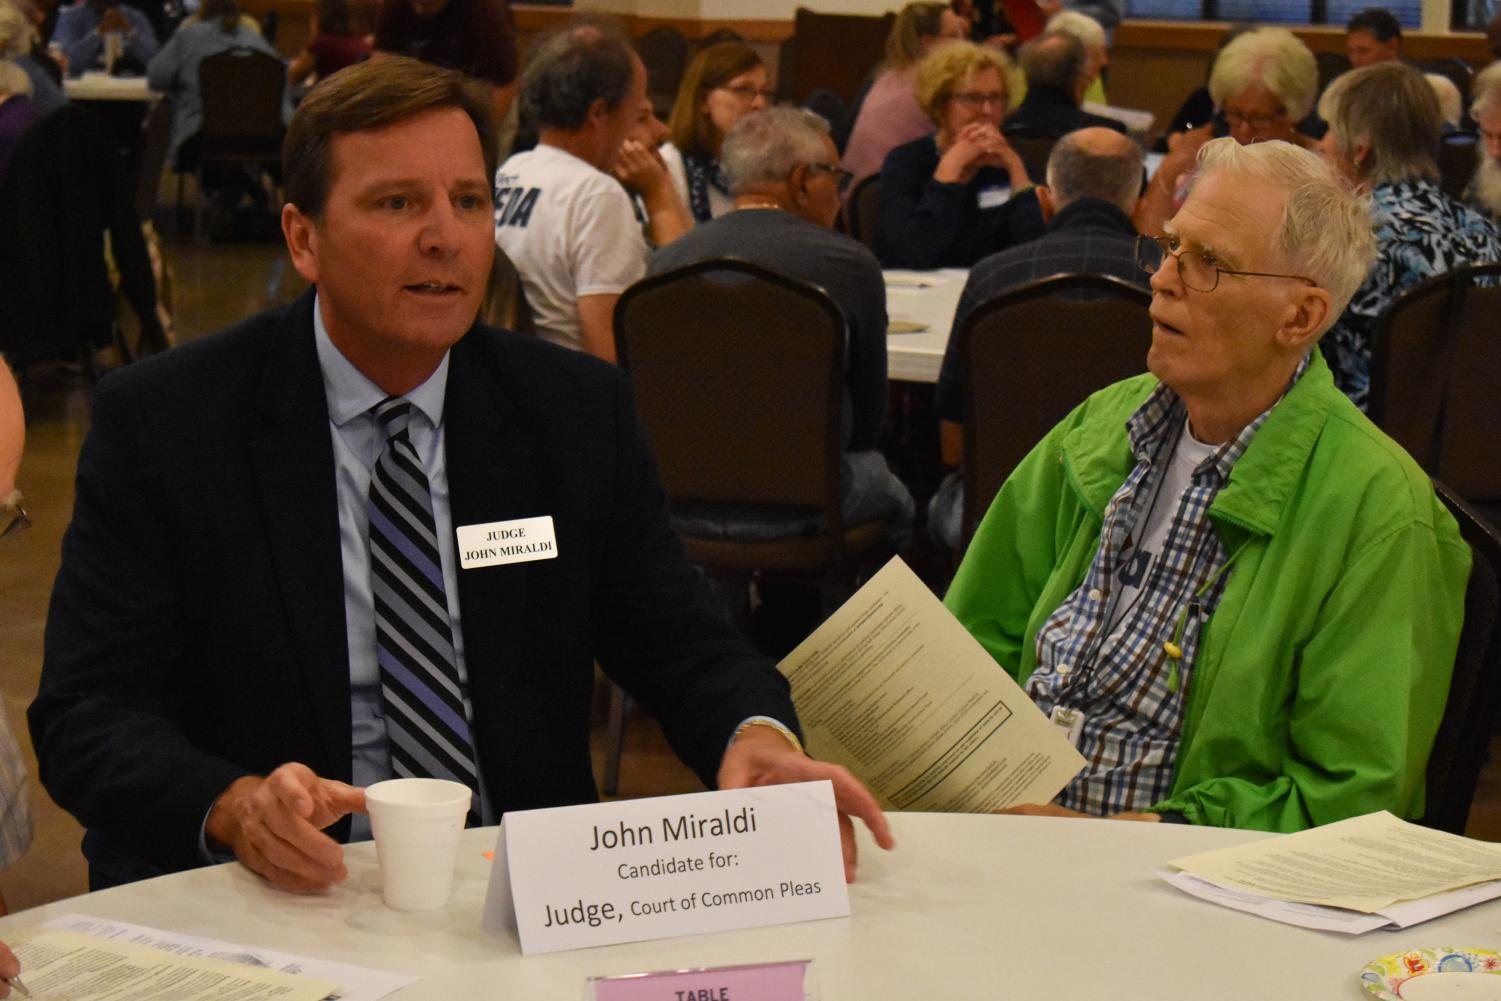 John Miraldi, a judicial candidate, speaks with a community member at Community Candidates Night.